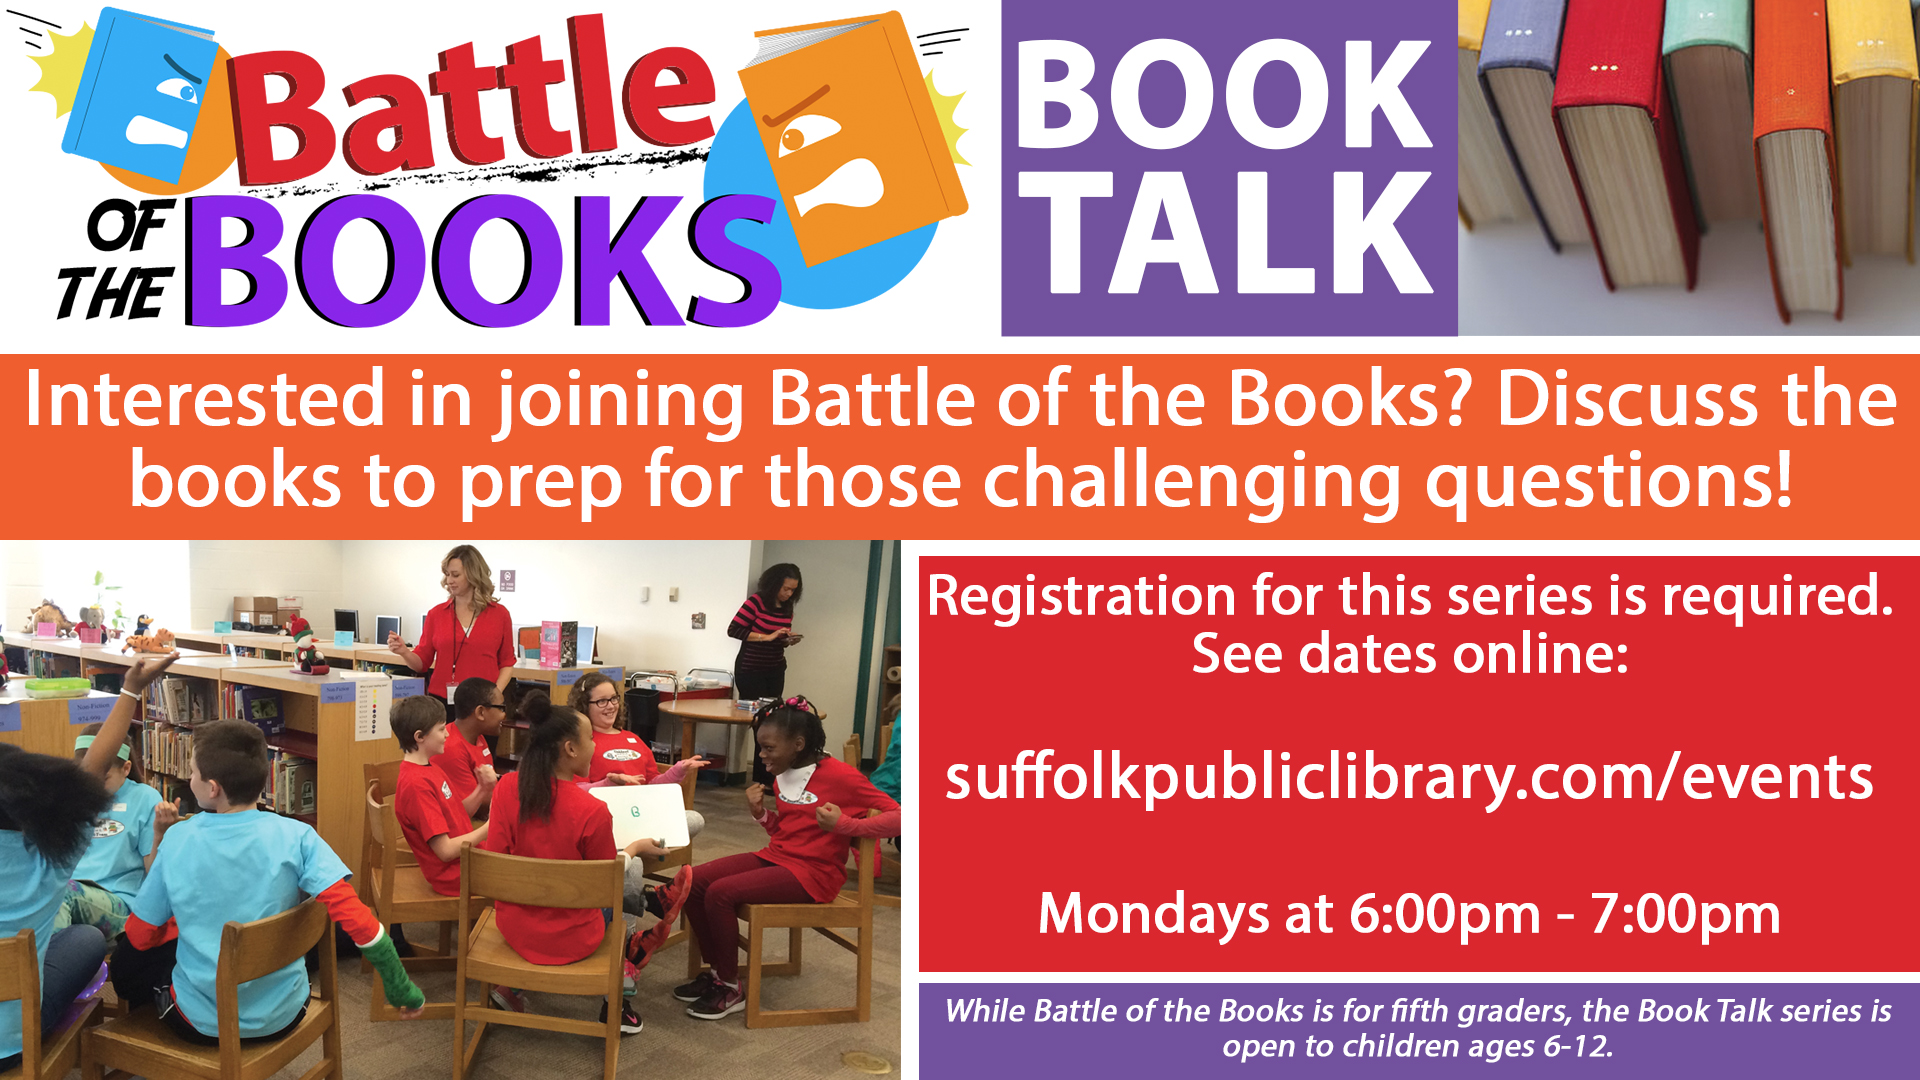 Battle of the Books Book Talk